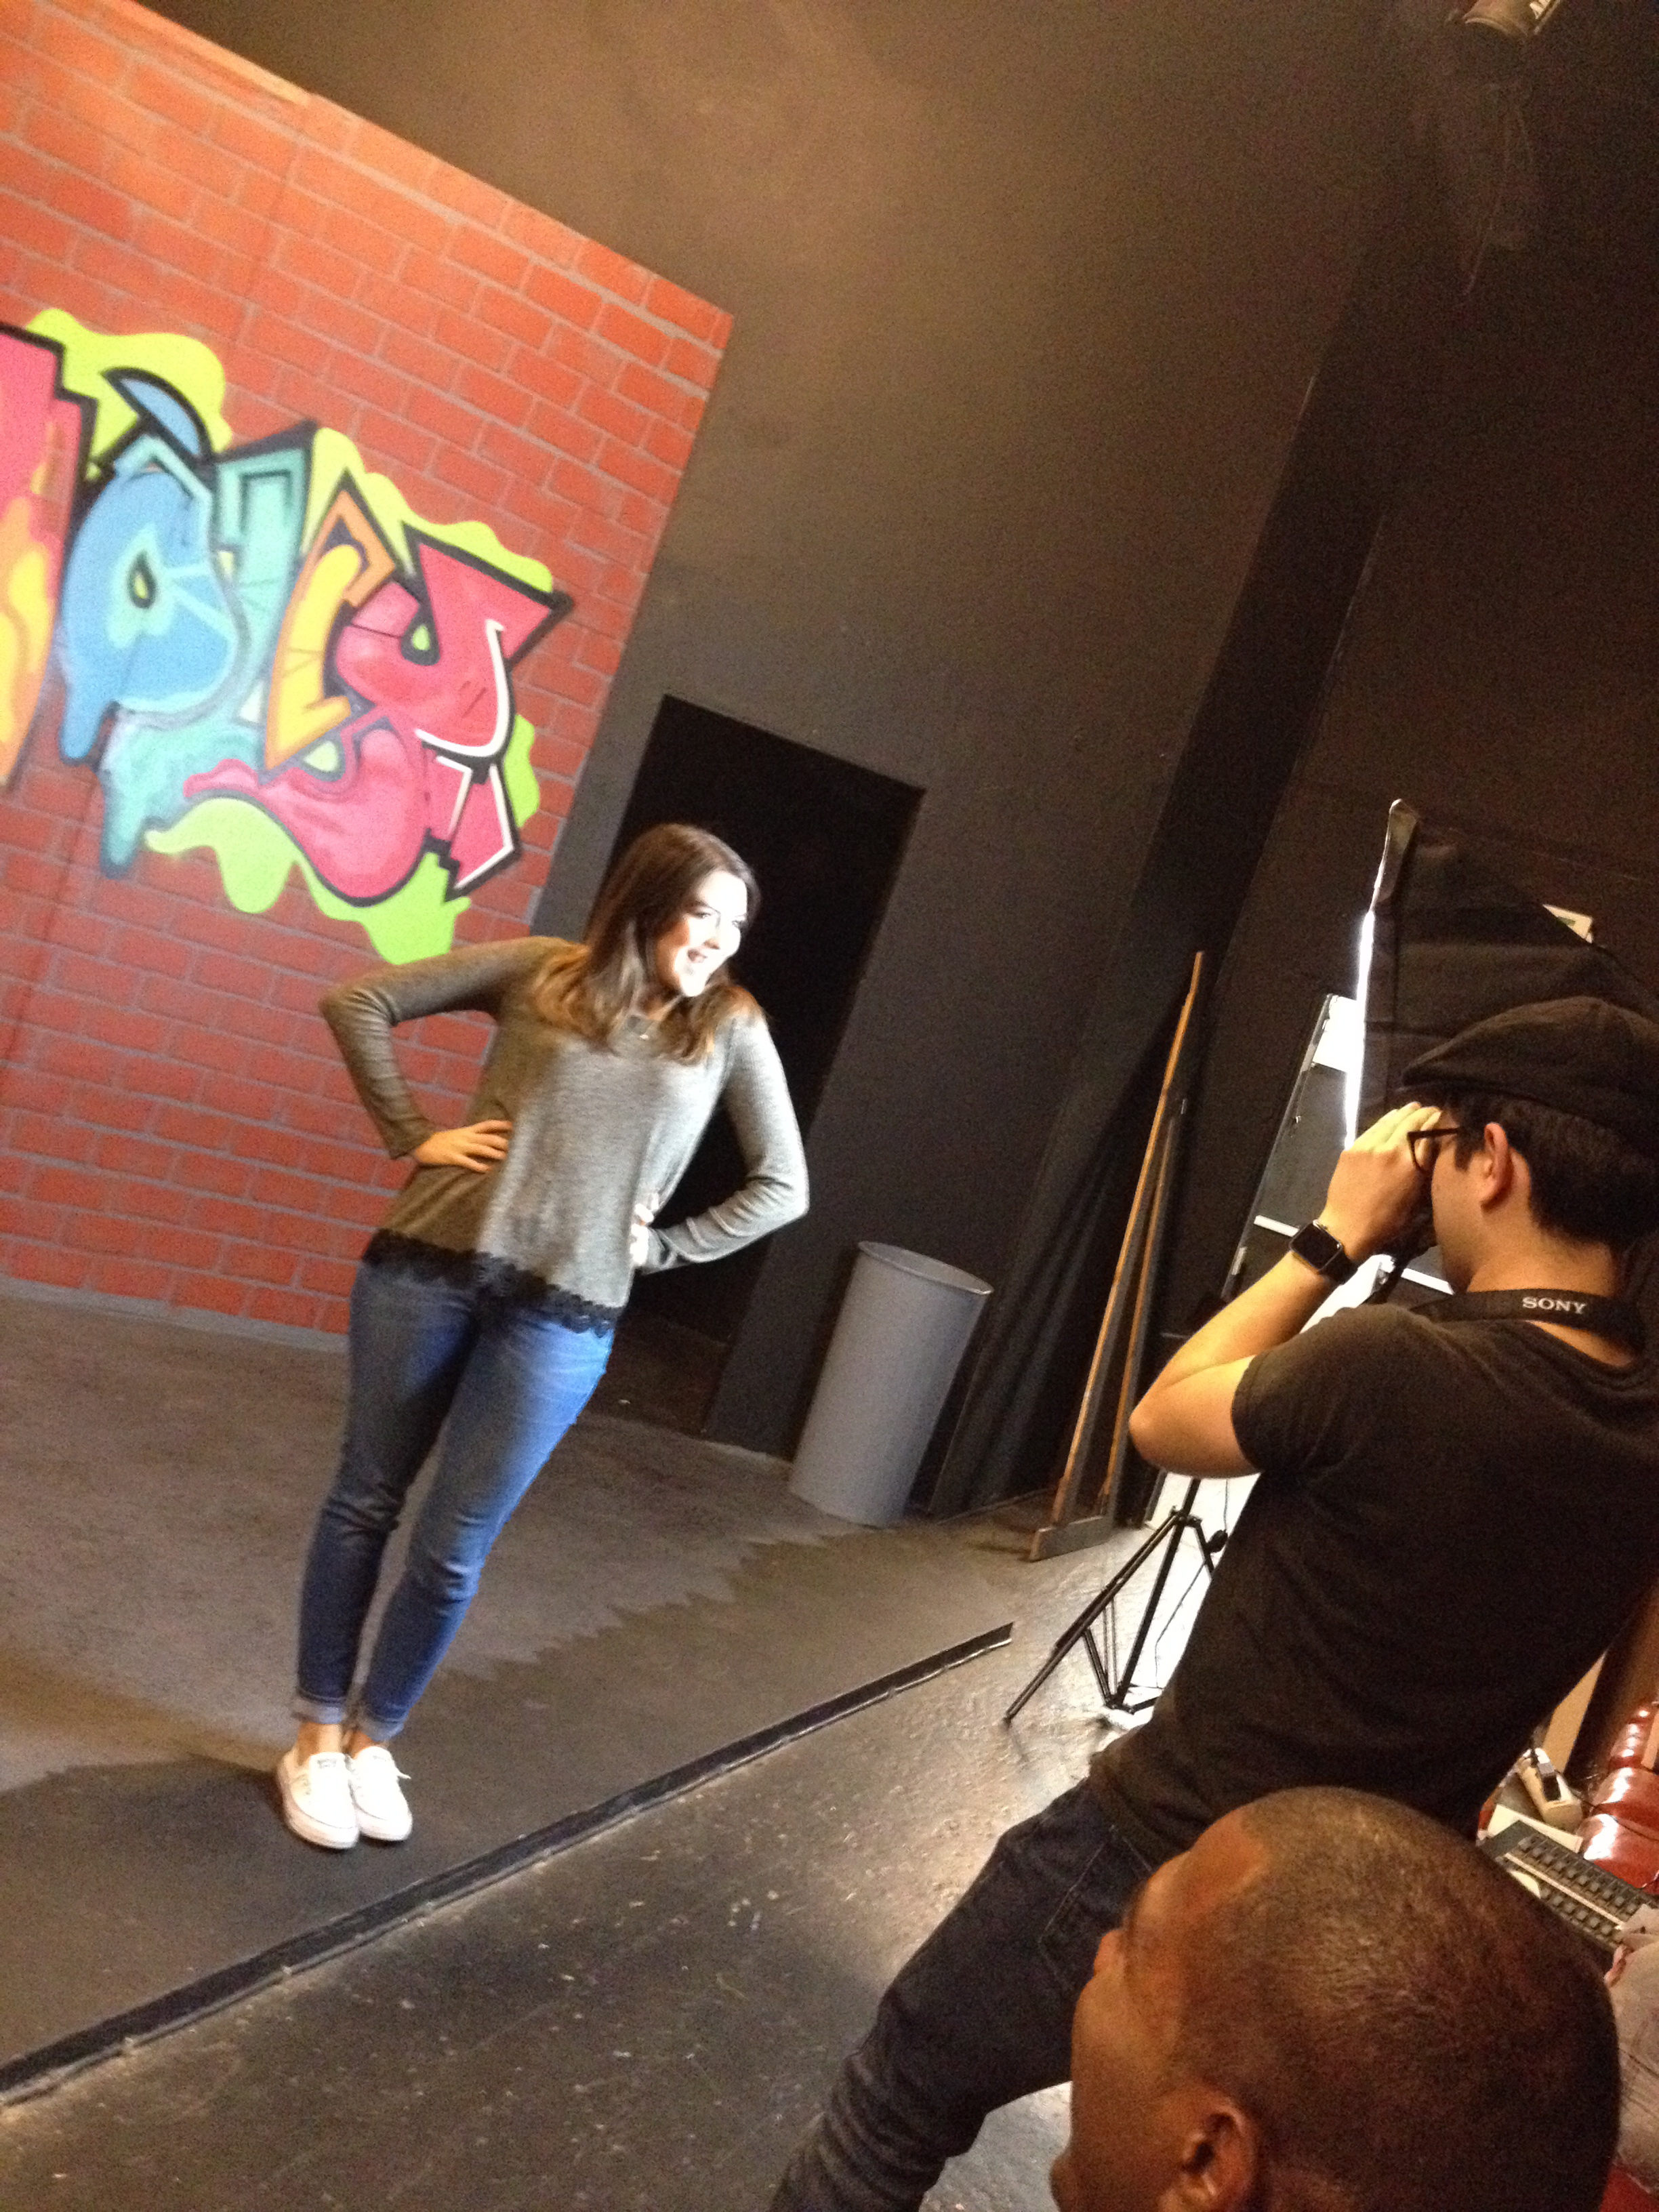 Behind the scenes! - Actress Devin Valdez at a photo call